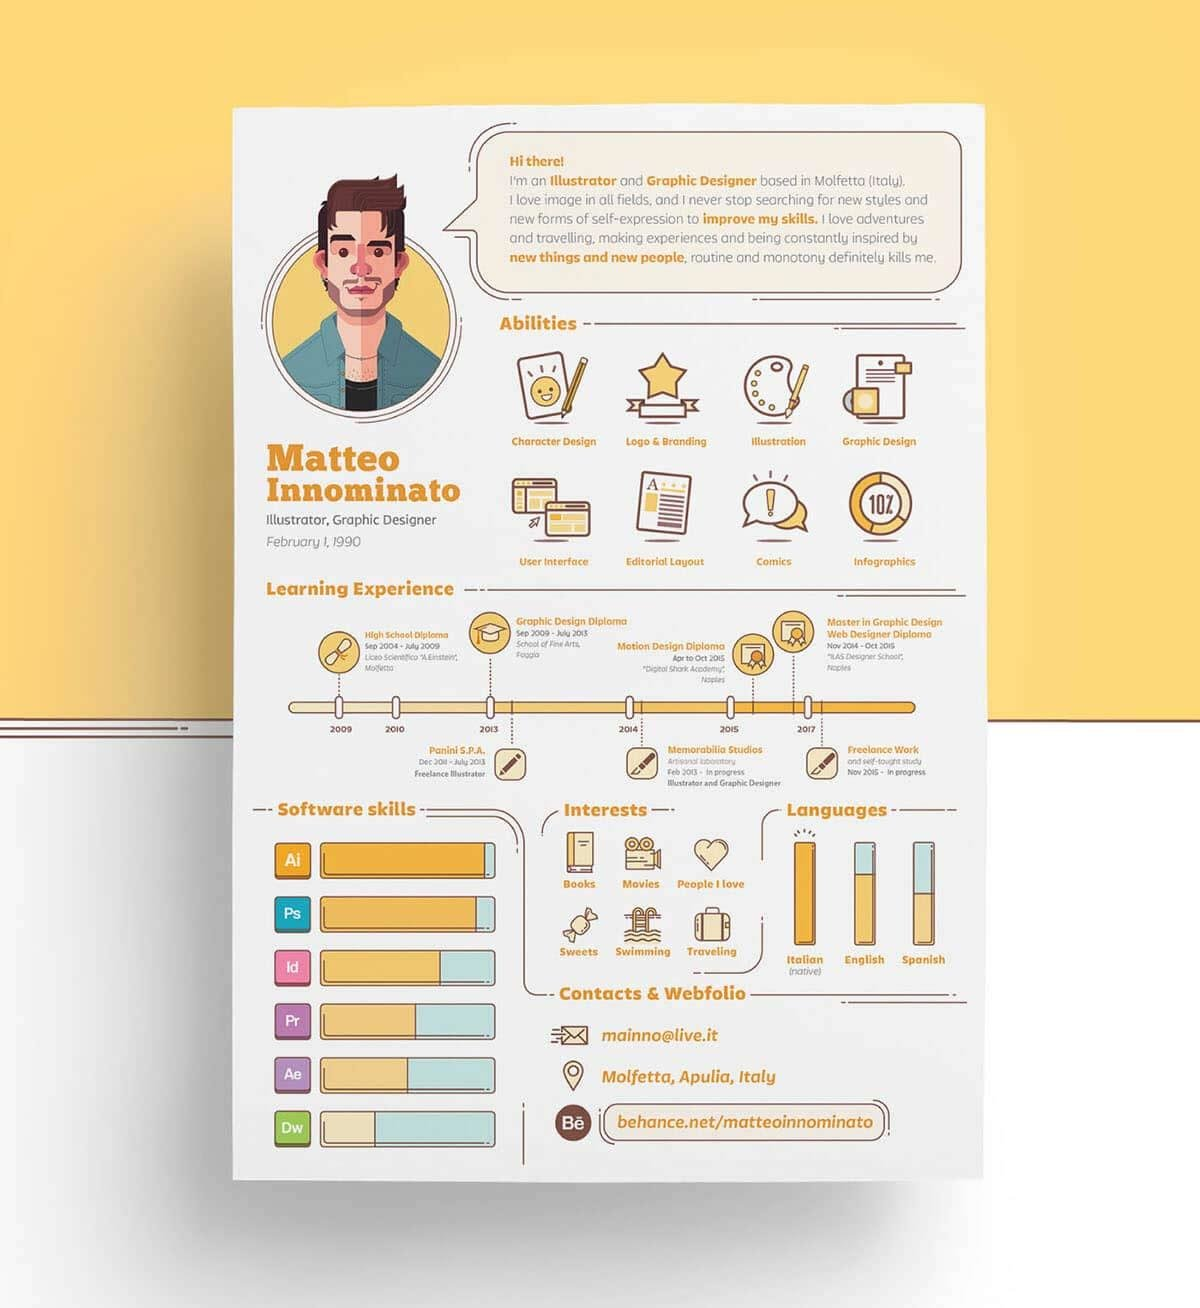 infographic resume templates examples builder best analytical chemist sample format for Resume Best Infographic Resume Builder